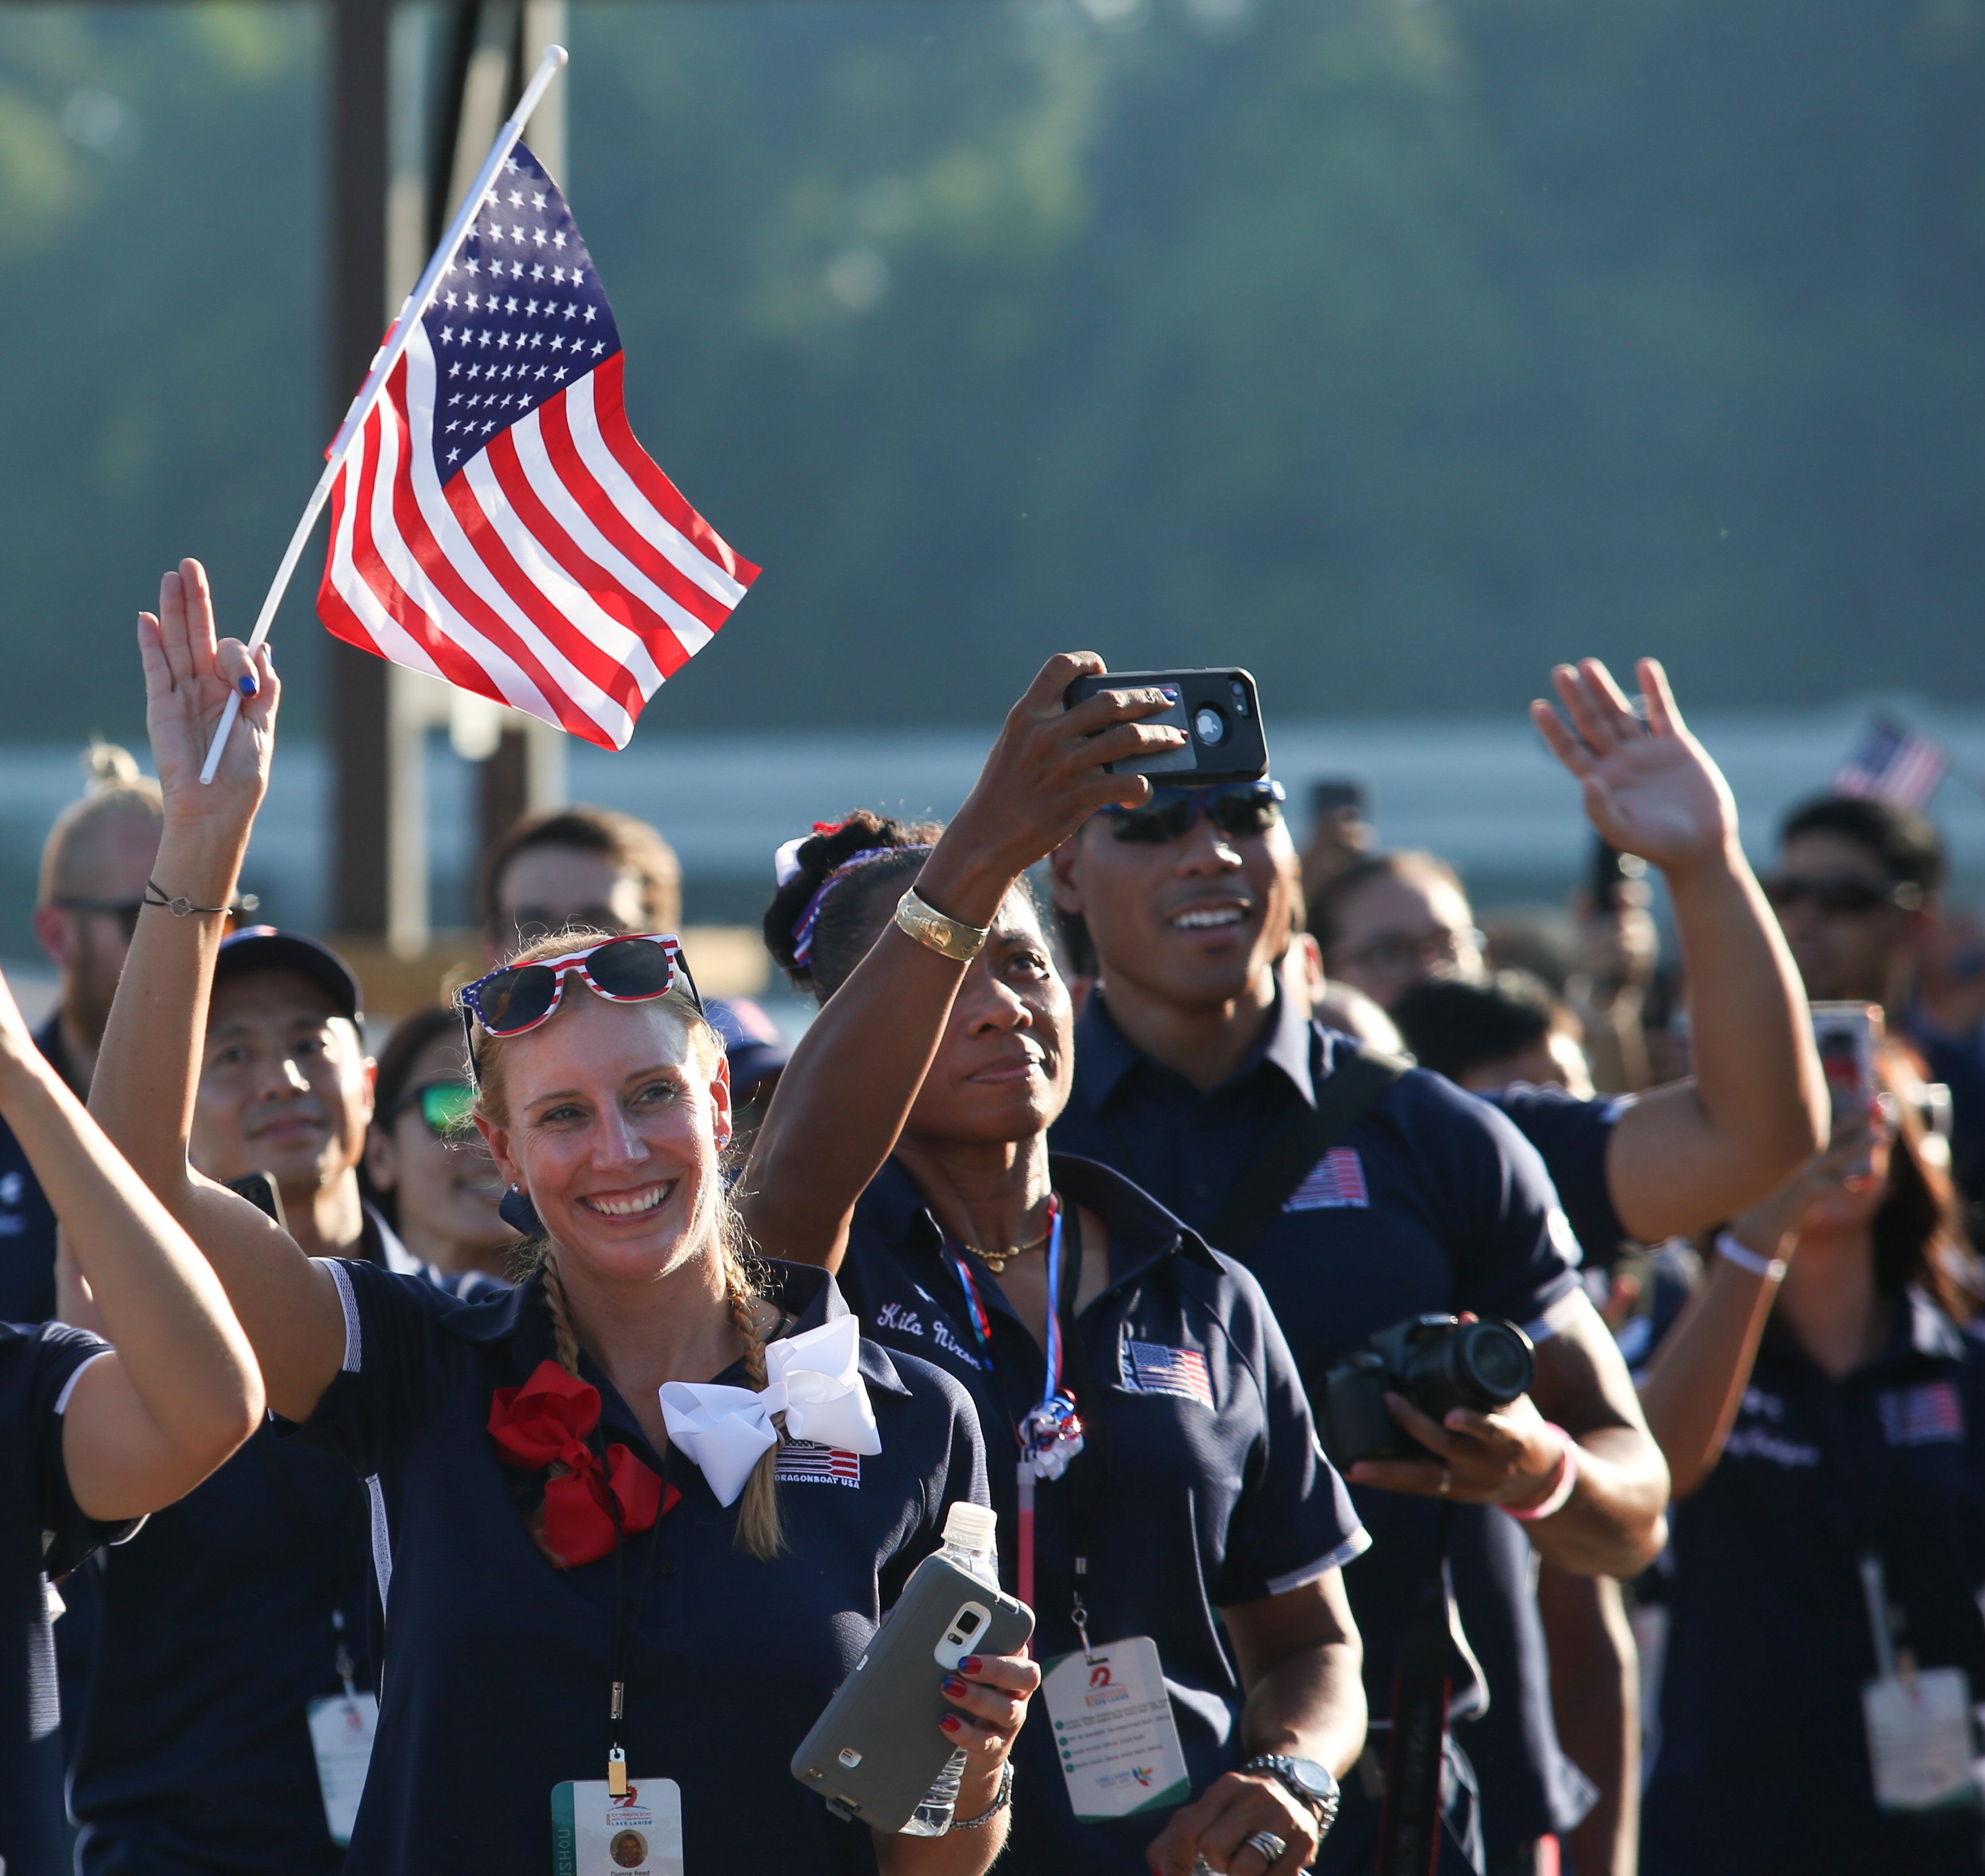 Team USA parades in during opening ceremonies